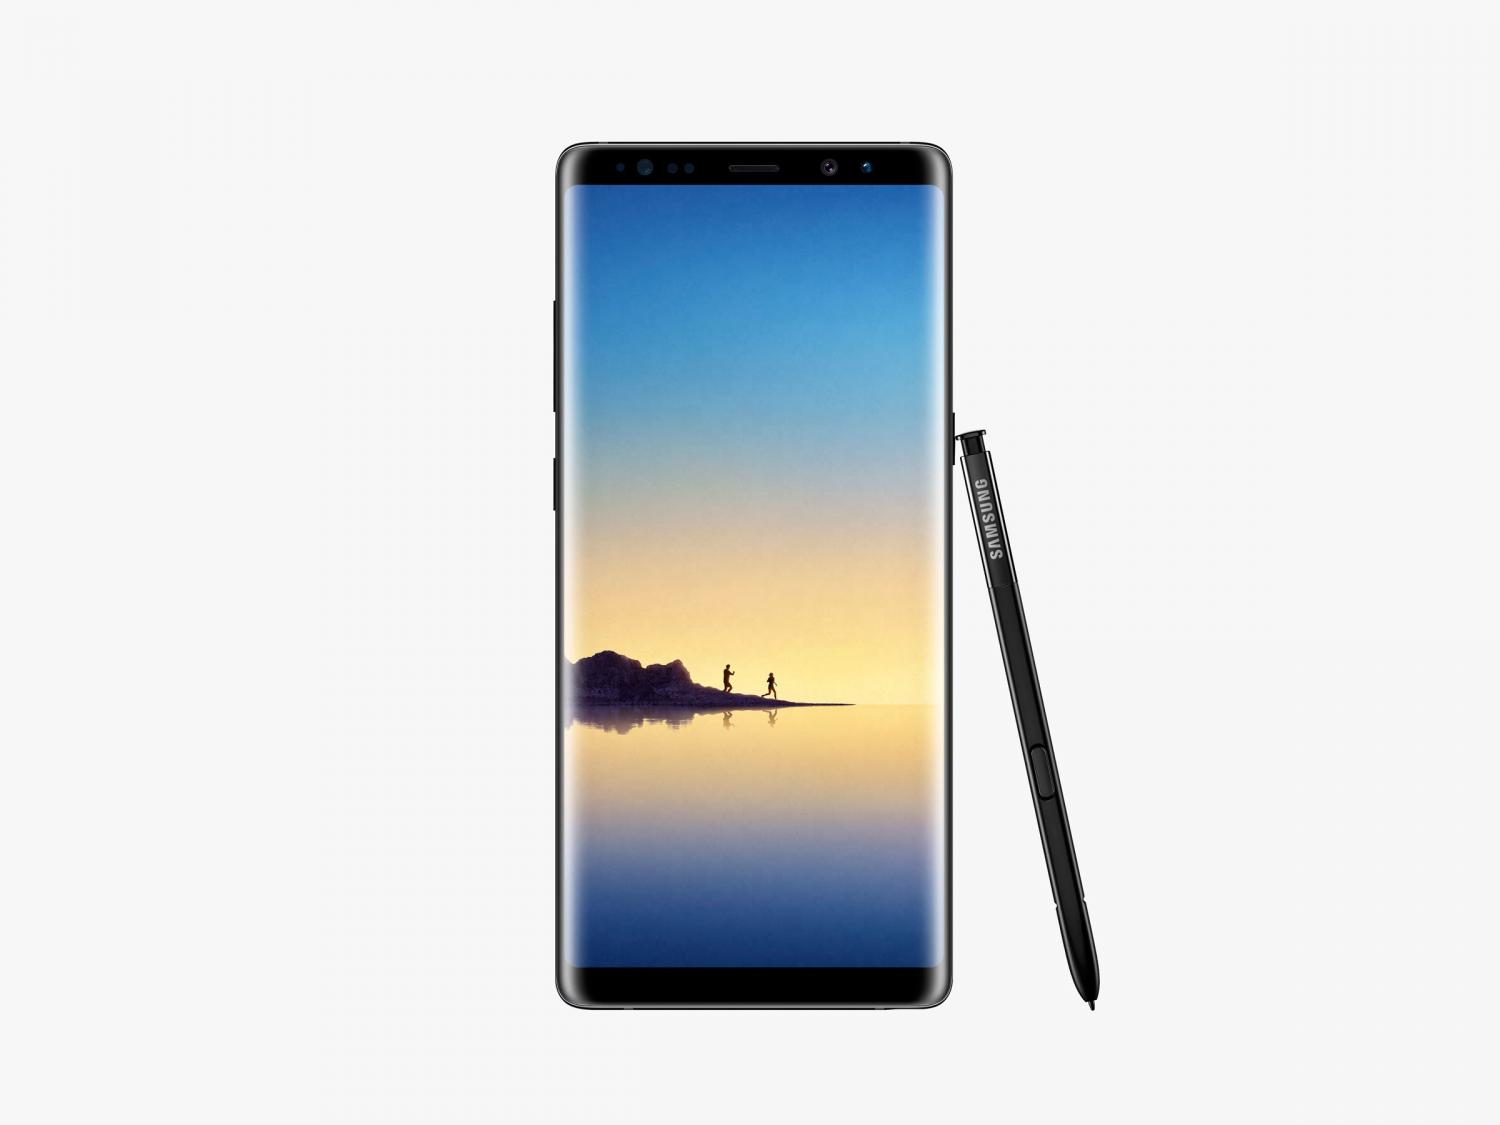 Up from the ashes: Samsung unveils successor to Note 7 phone